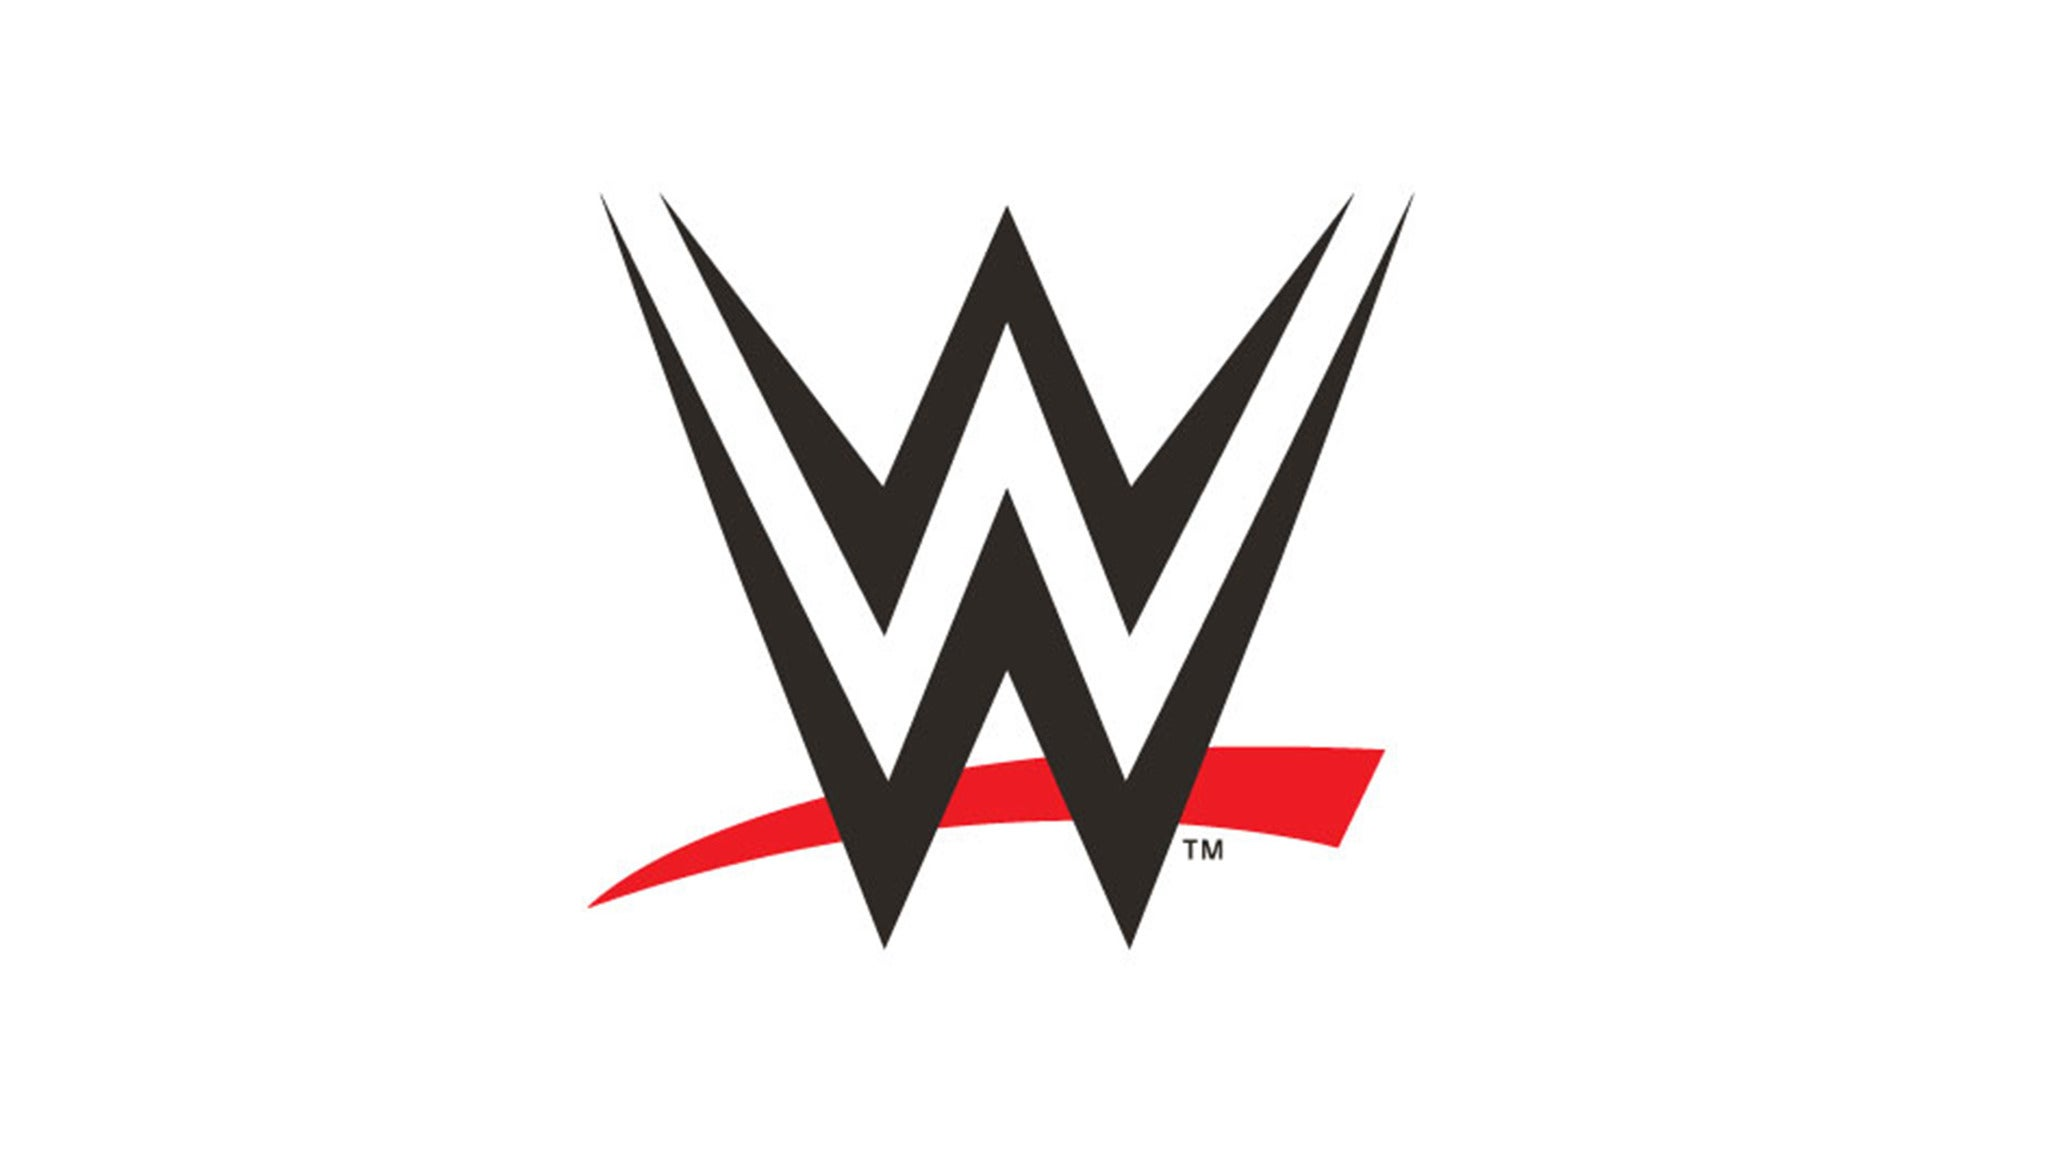 WWE Live: SummerSlam Heatwave Tour at Pensacola Bay Center